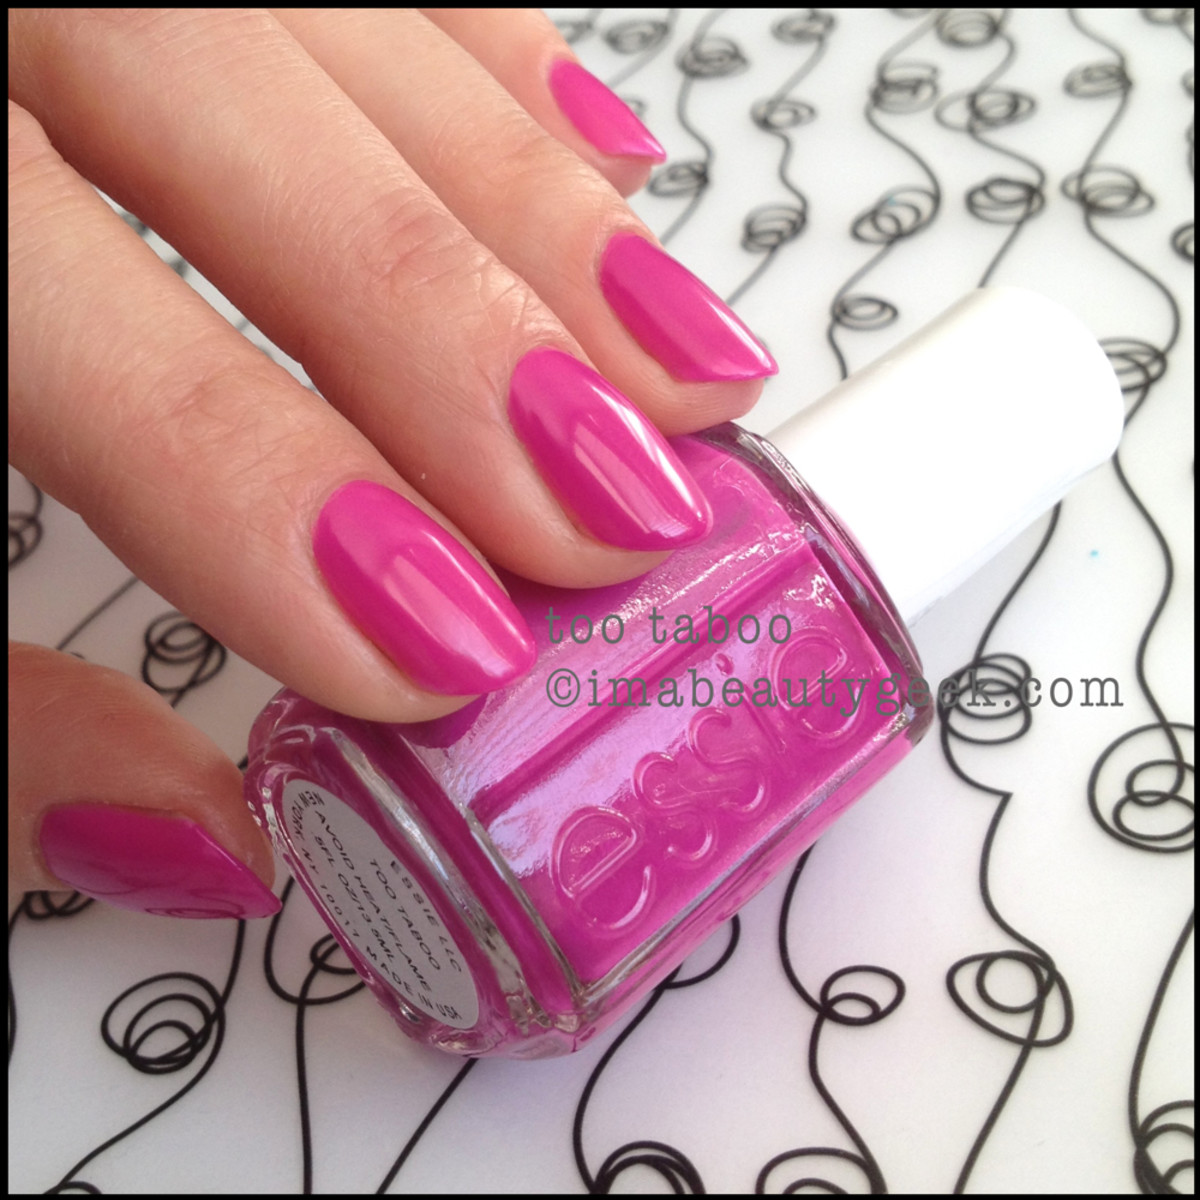 Essie Too Taboo_1 Neon 2014